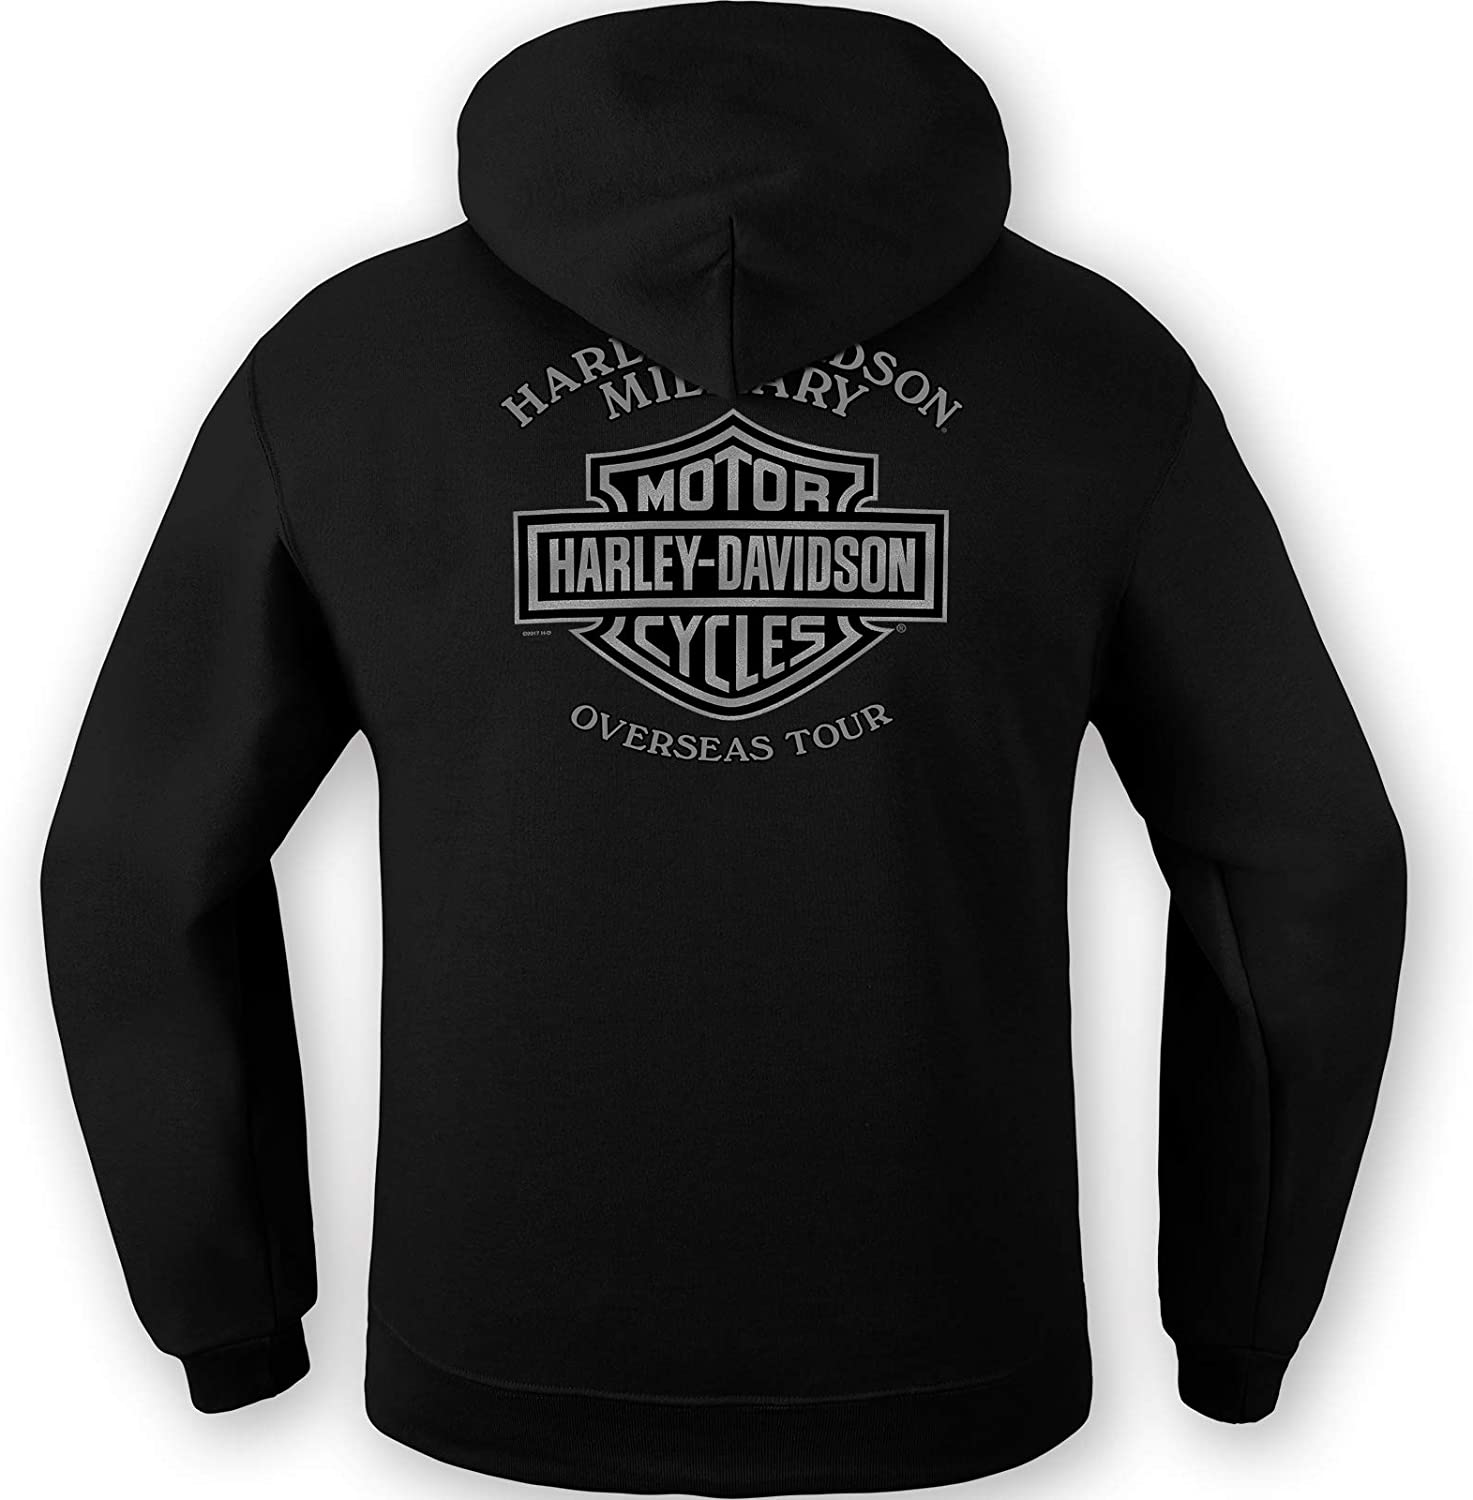 Veterans Support Mens Black Graphic Pullover Hooded Sweatshirt Overseas Tour HARLEY-DAVIDSON Military